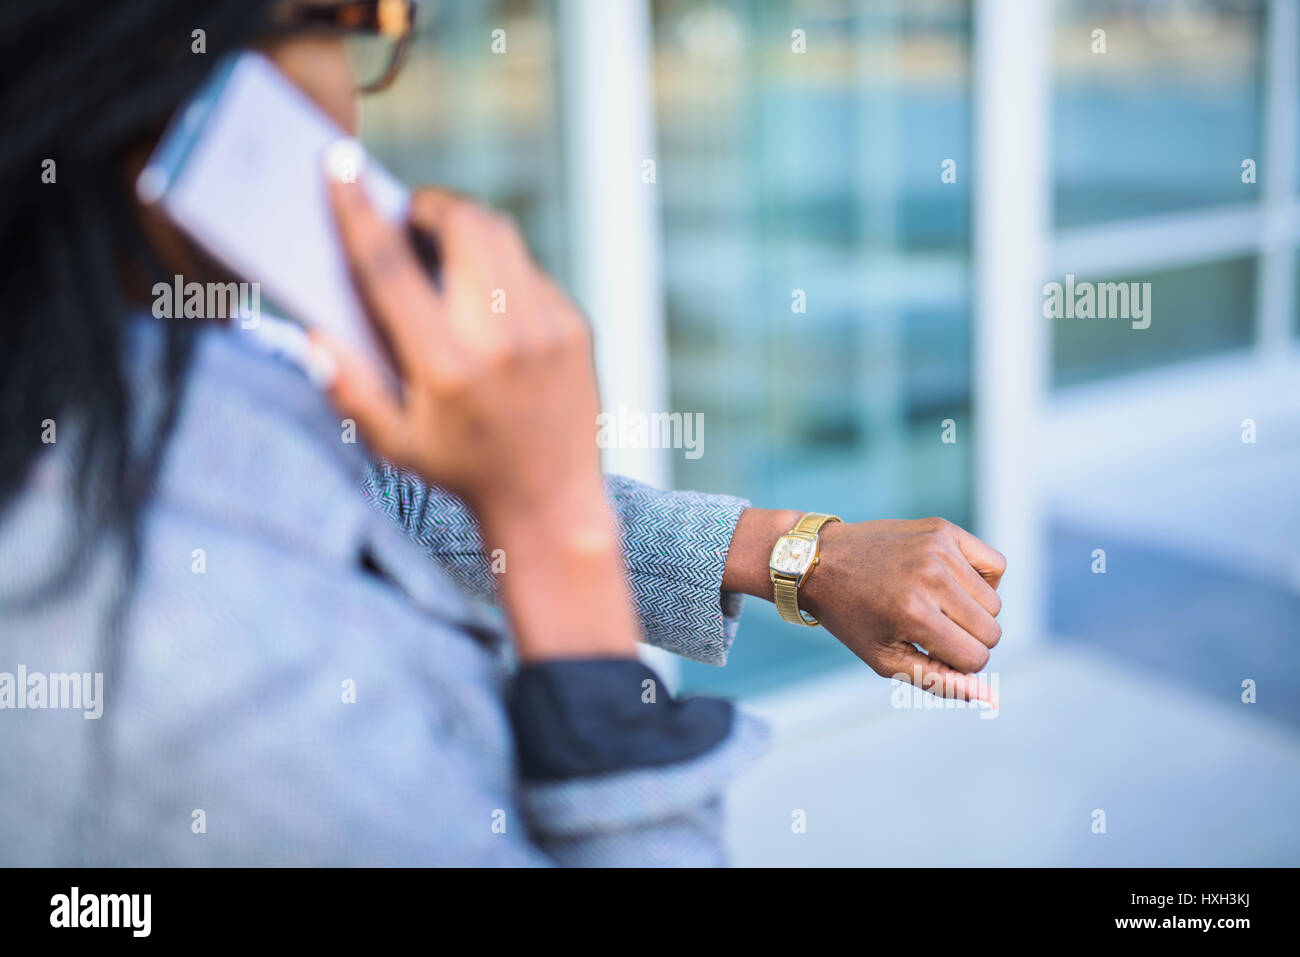 She's so busy all the time - Stock Image